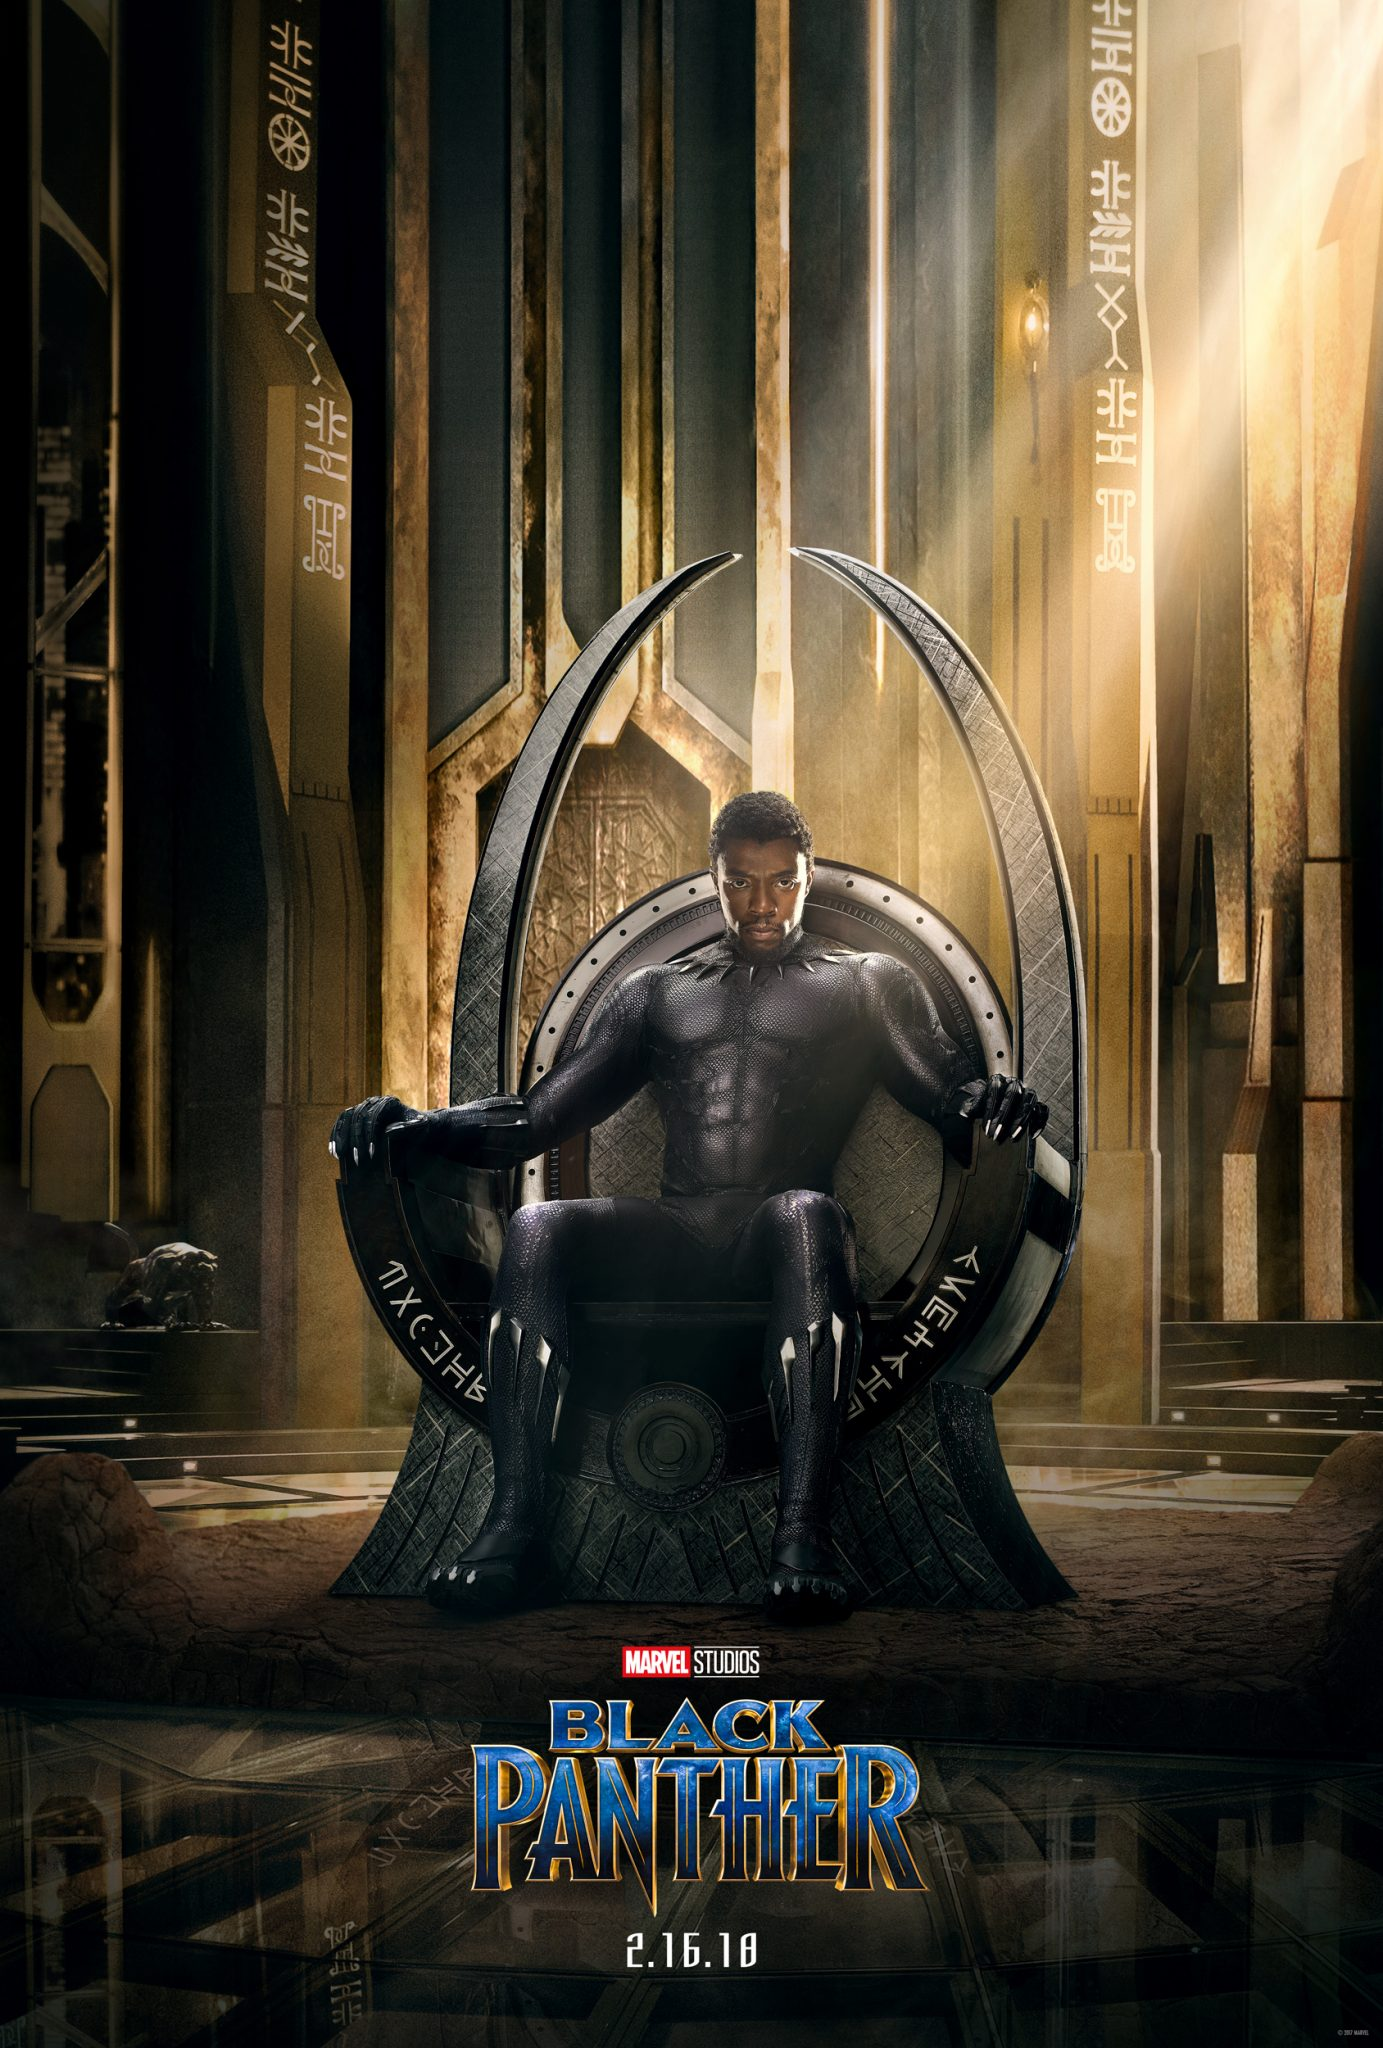 First Look: Black Panther